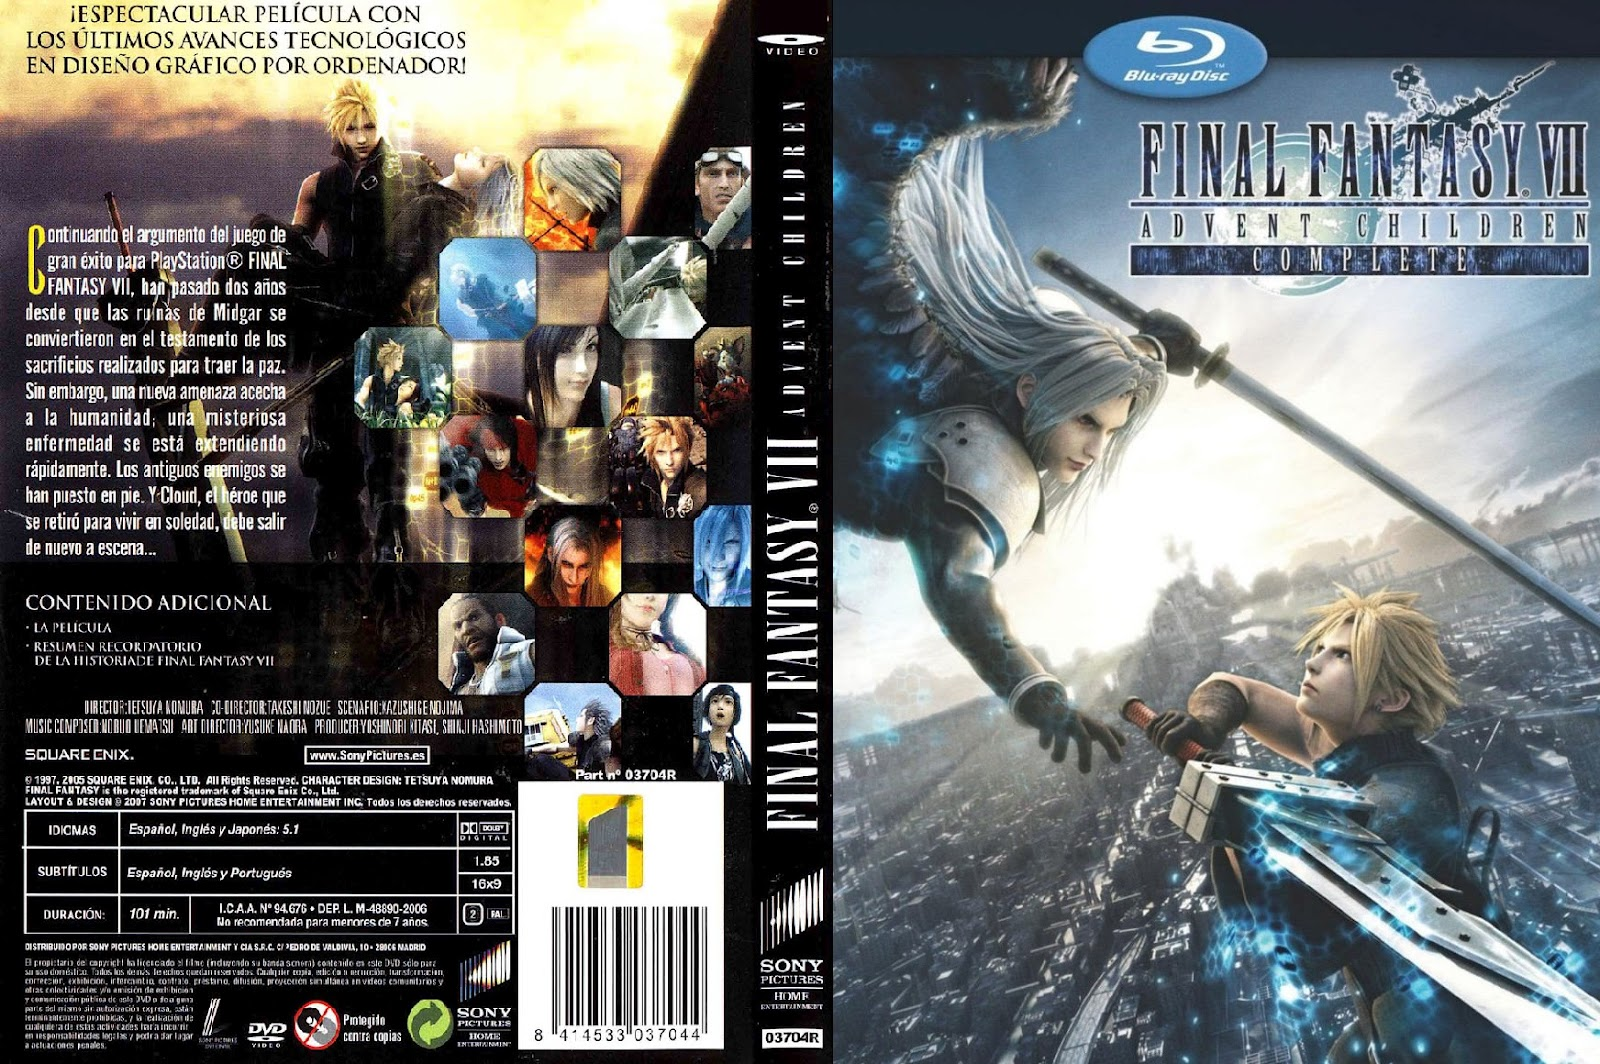 final fantasy vii advent: